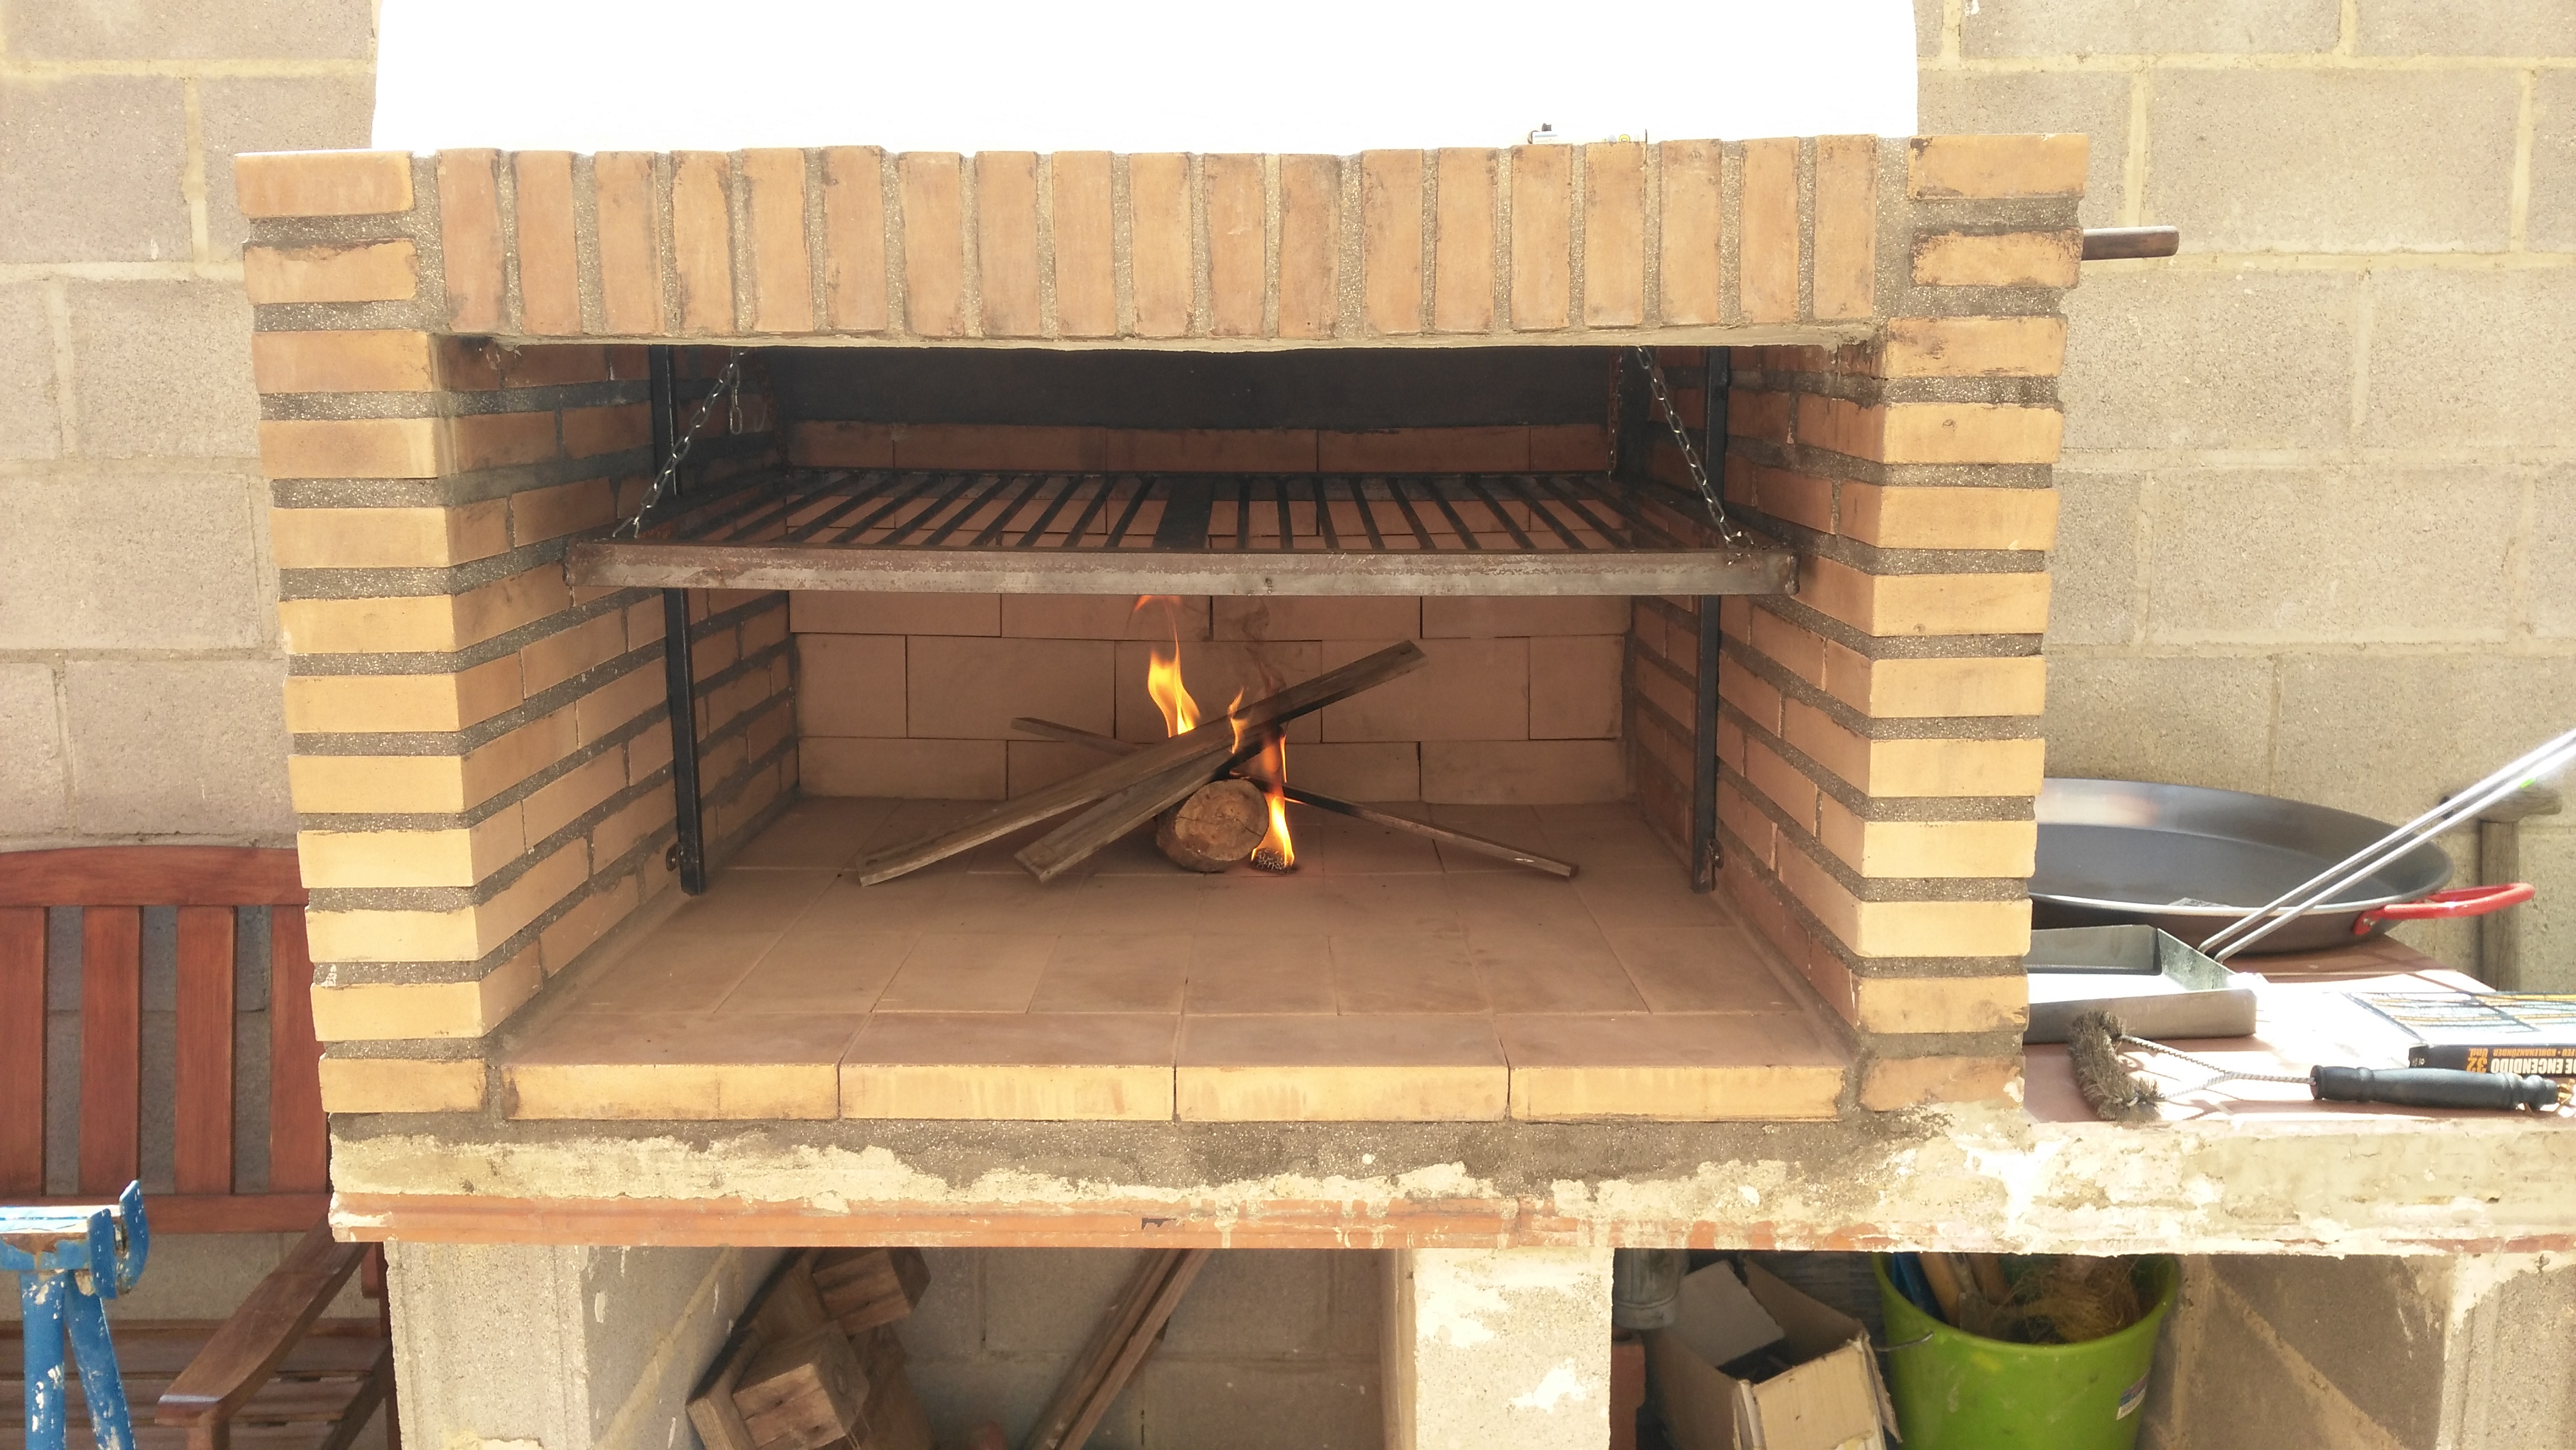 Barbacoa de obra comunidad leroy merlin for Barbacoa leroy merlin